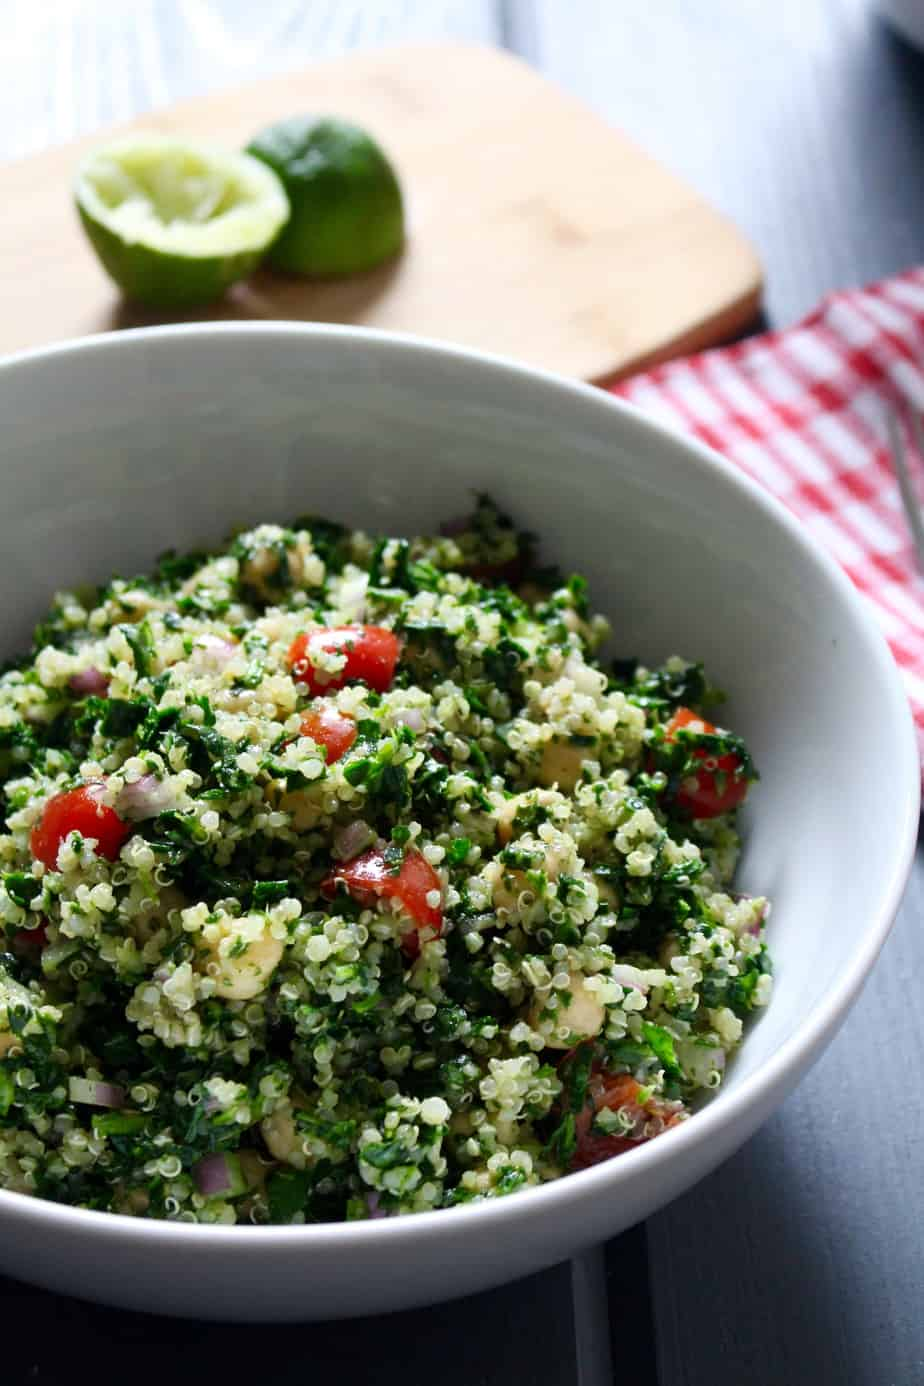 Vegan Cilantro Lime Quinoa Spinach Salad with Chickpeas | Frugal Nutrition